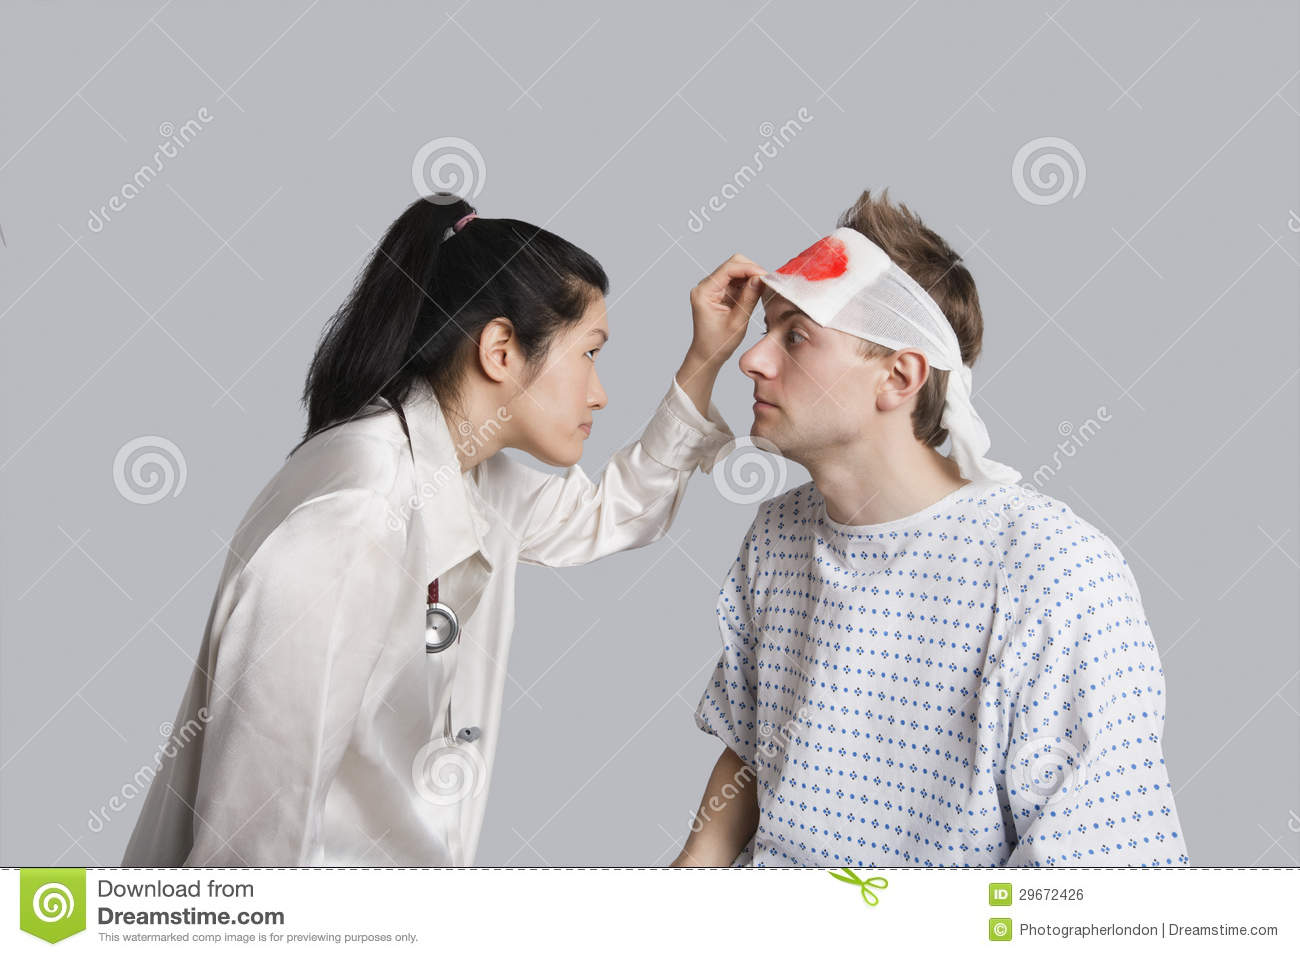 ... Stock Image: Young female doctor examining an injured male patient